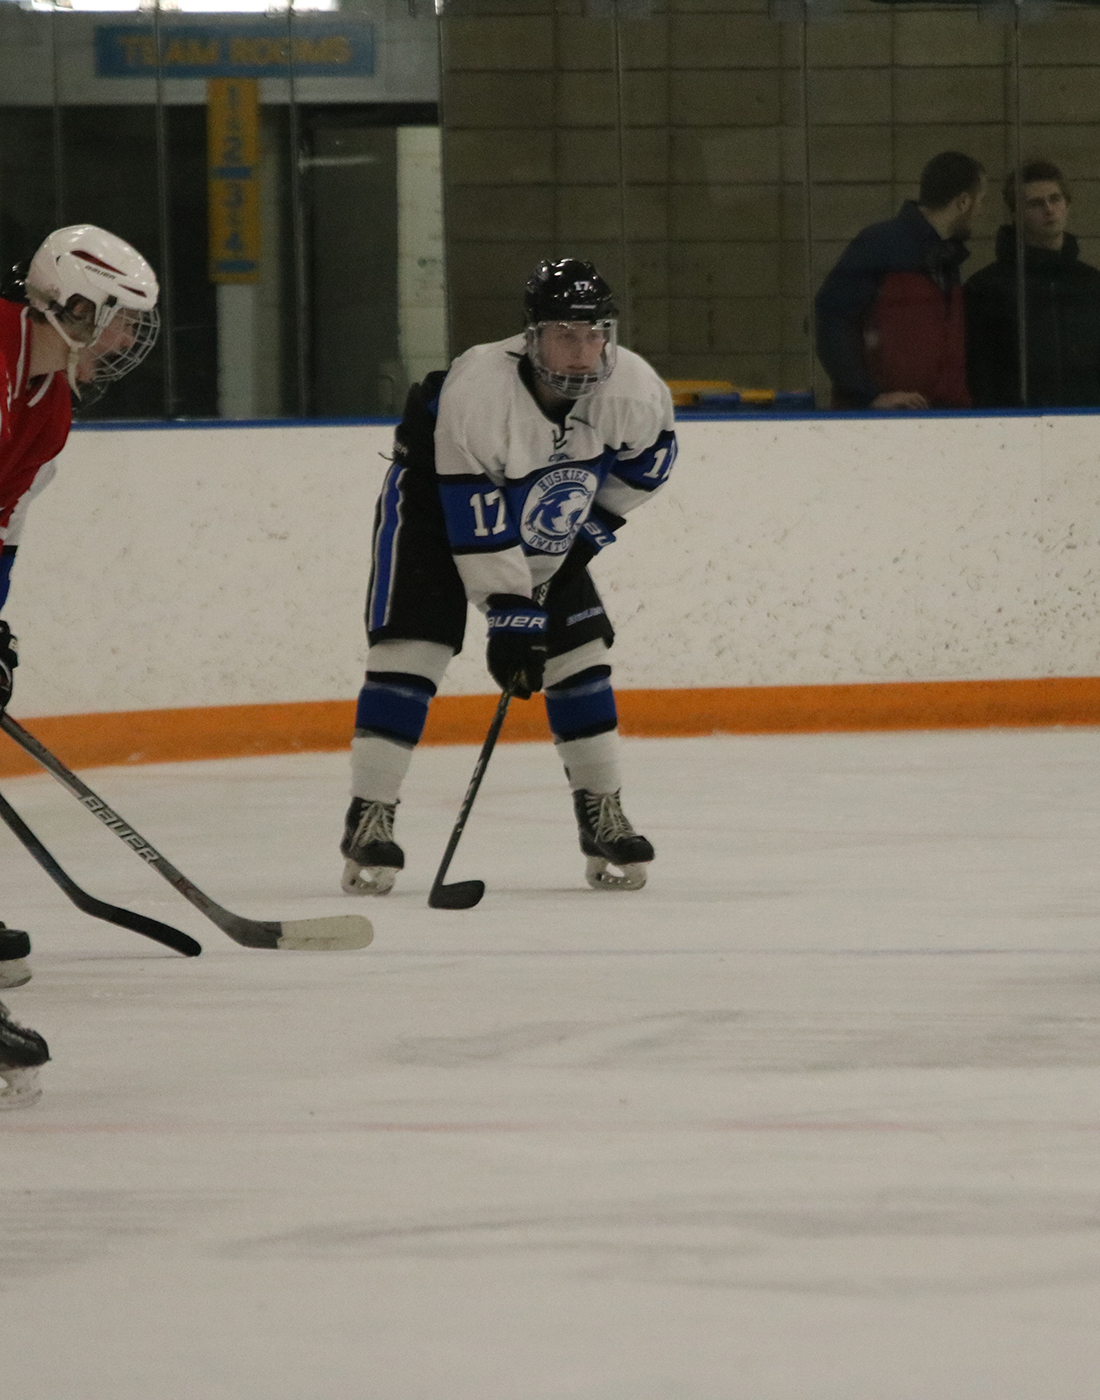 Mason Oland waiting for the puck drop